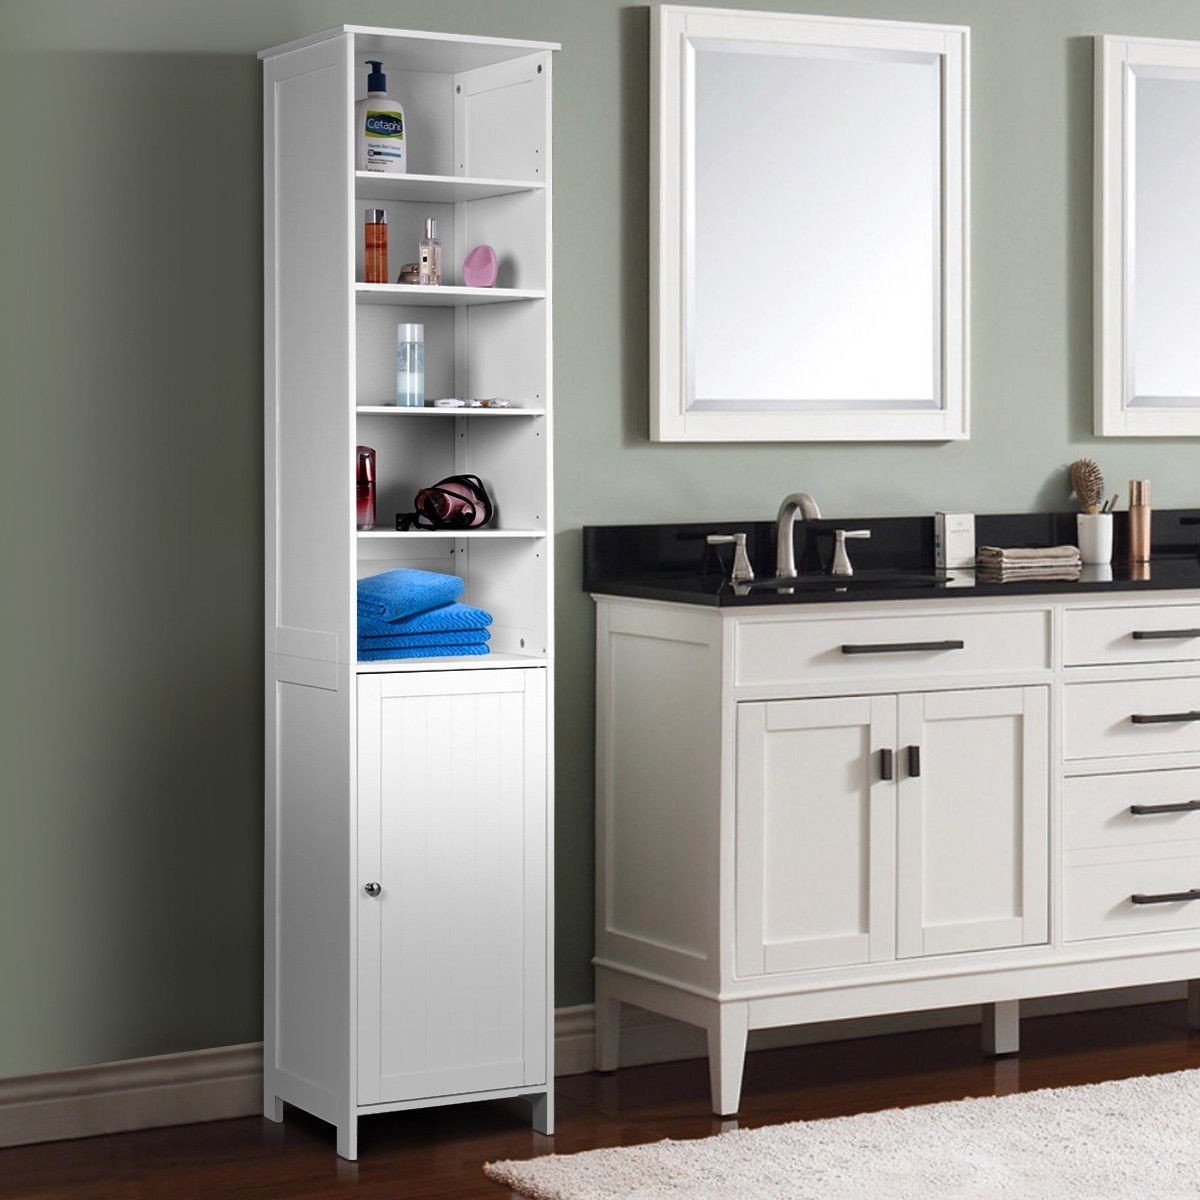 WATERJOY 72'' Tall Cabinet, Standing Tall Storage Cabinet, Wooden White Bathroom Cupboard with Door and 5 Adjustable Shelves, Elegant and Space-Saving